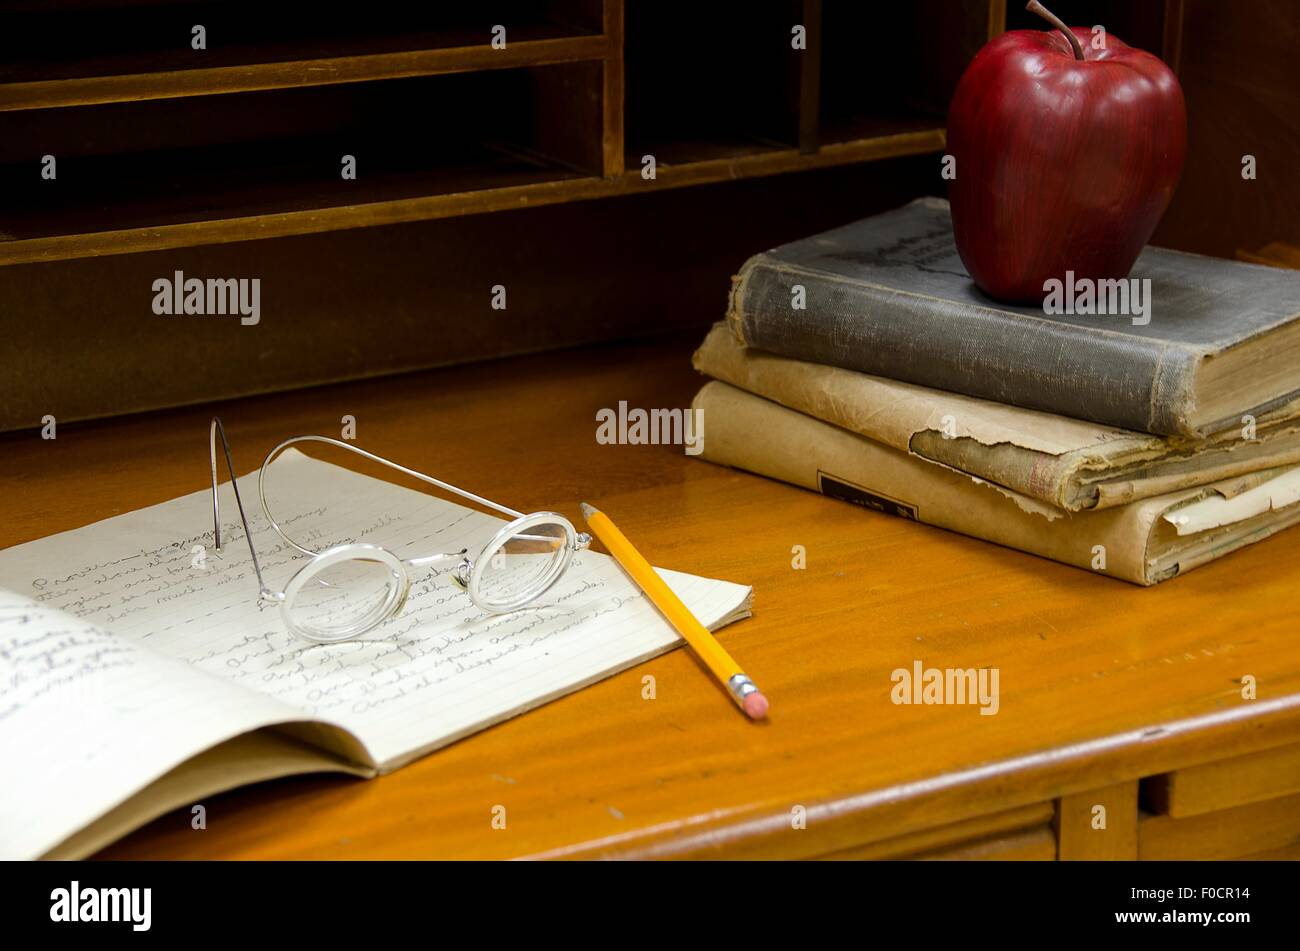 Old-fashioned eye glasses on notebook on antique teacher's desk. - Old-fashioned Eye Glasses On Notebook On Antique Teacher's Desk